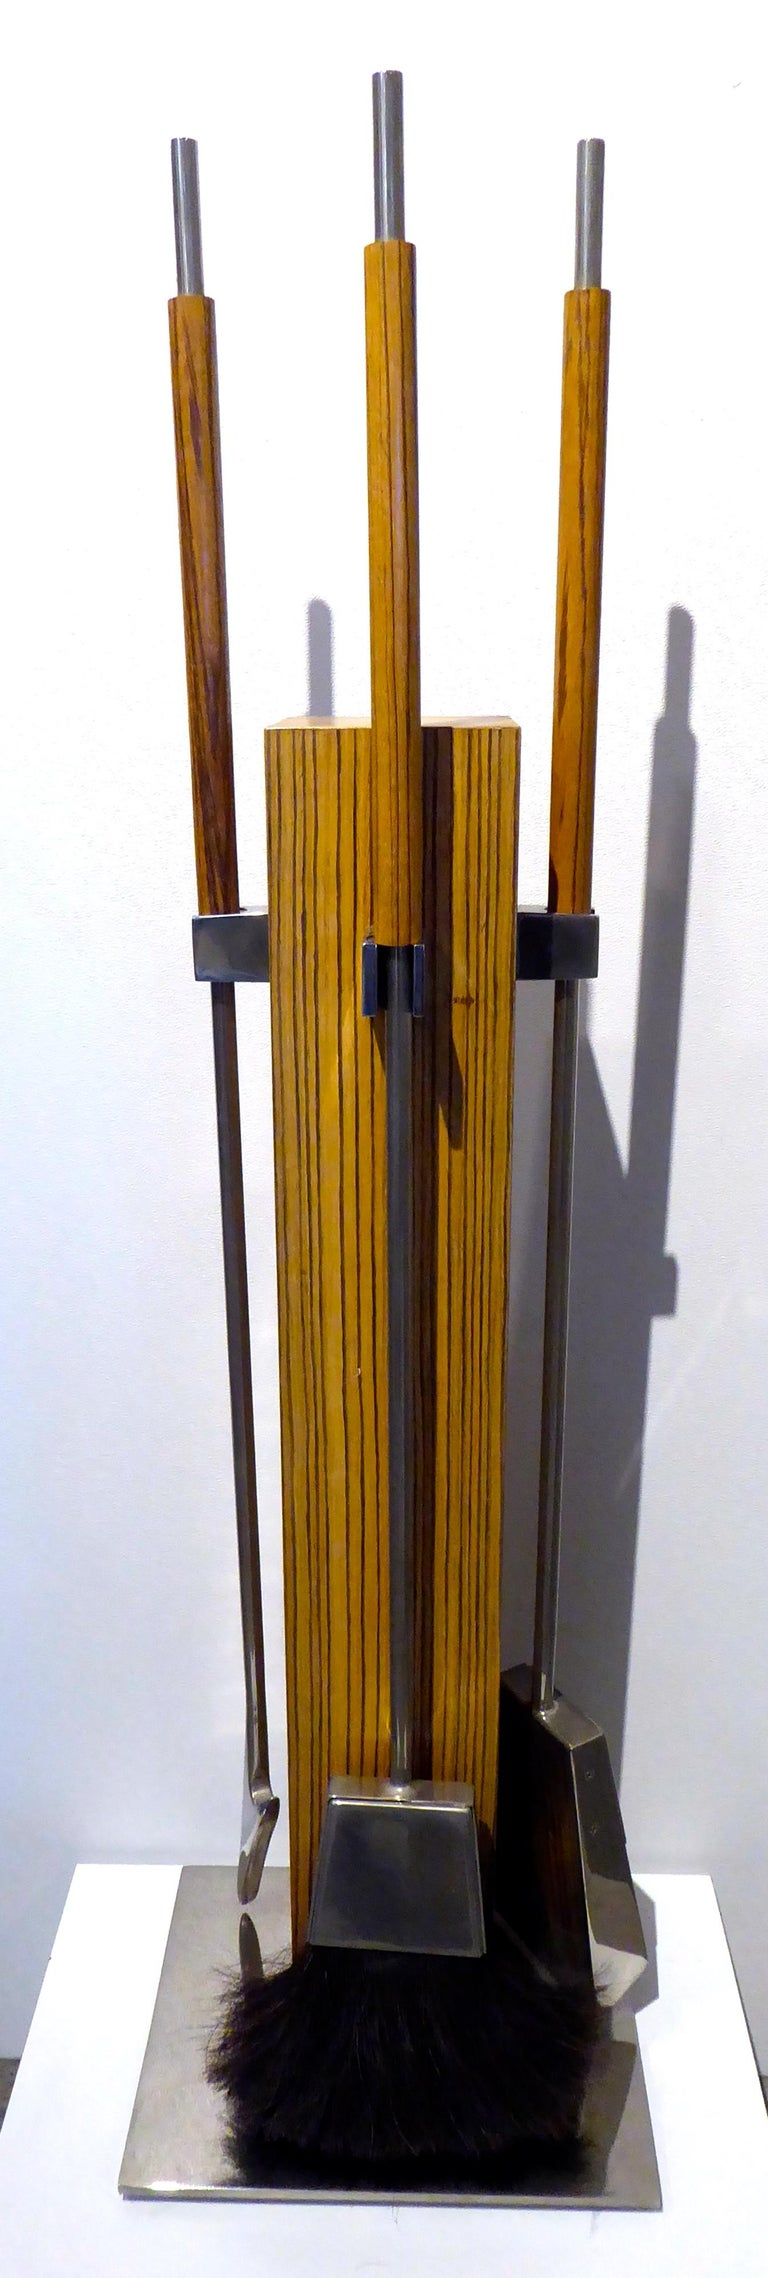 Allesandro Albrizzi Zebra Wood and Steel Fire Tool Set In Good Condition For Sale In Palm Springs, CA